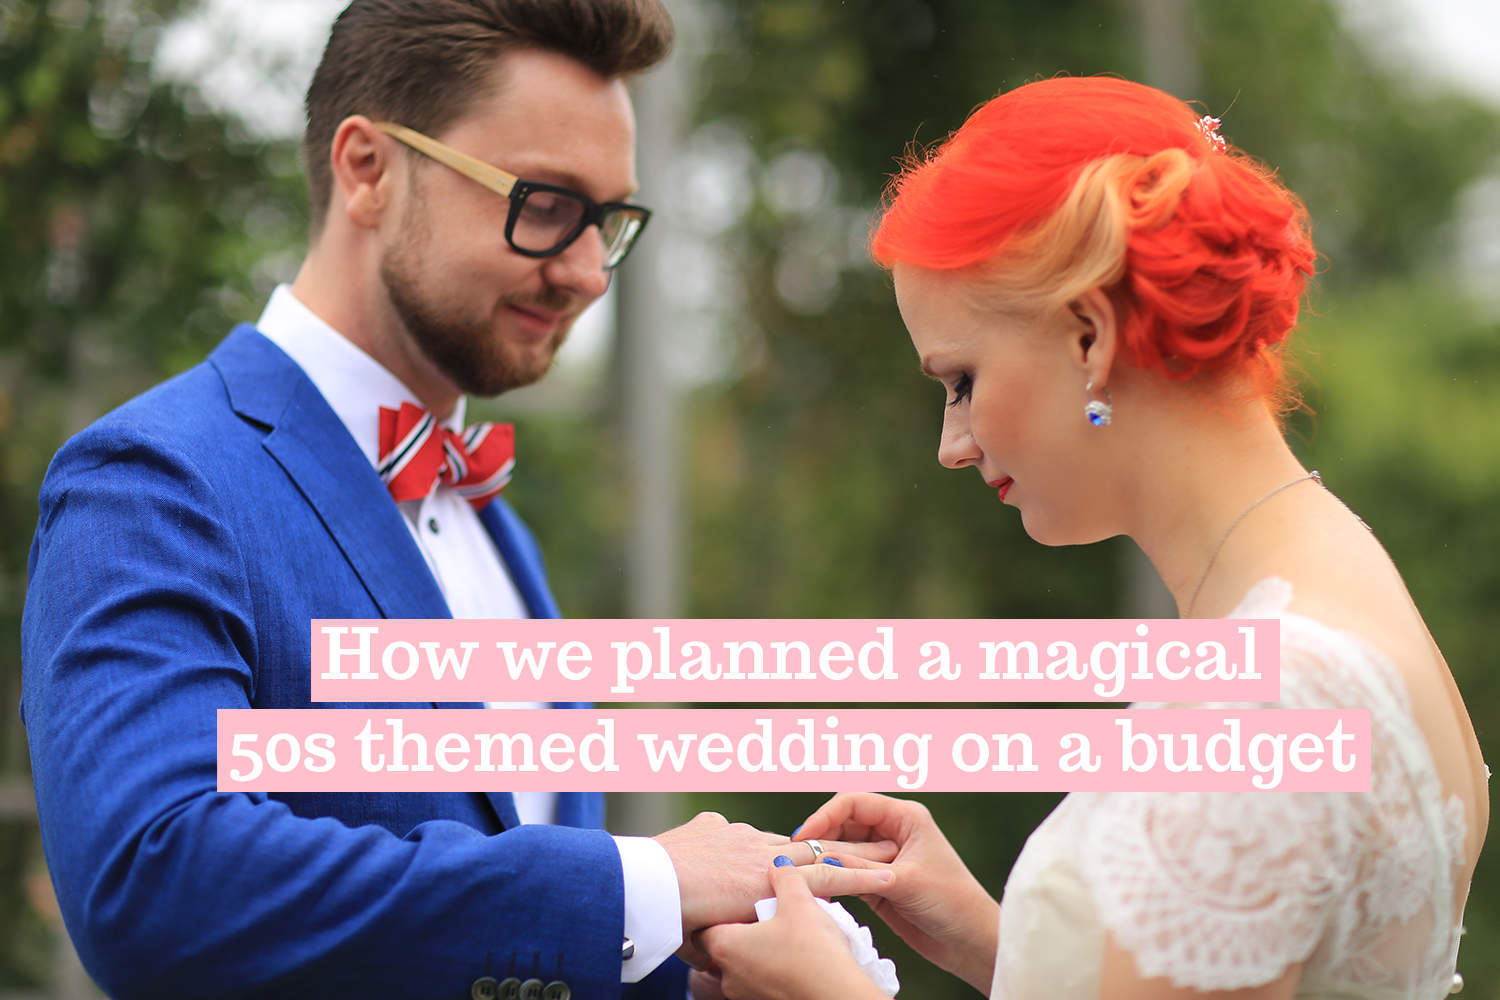 How to plan a 50s themed wedding on a budget